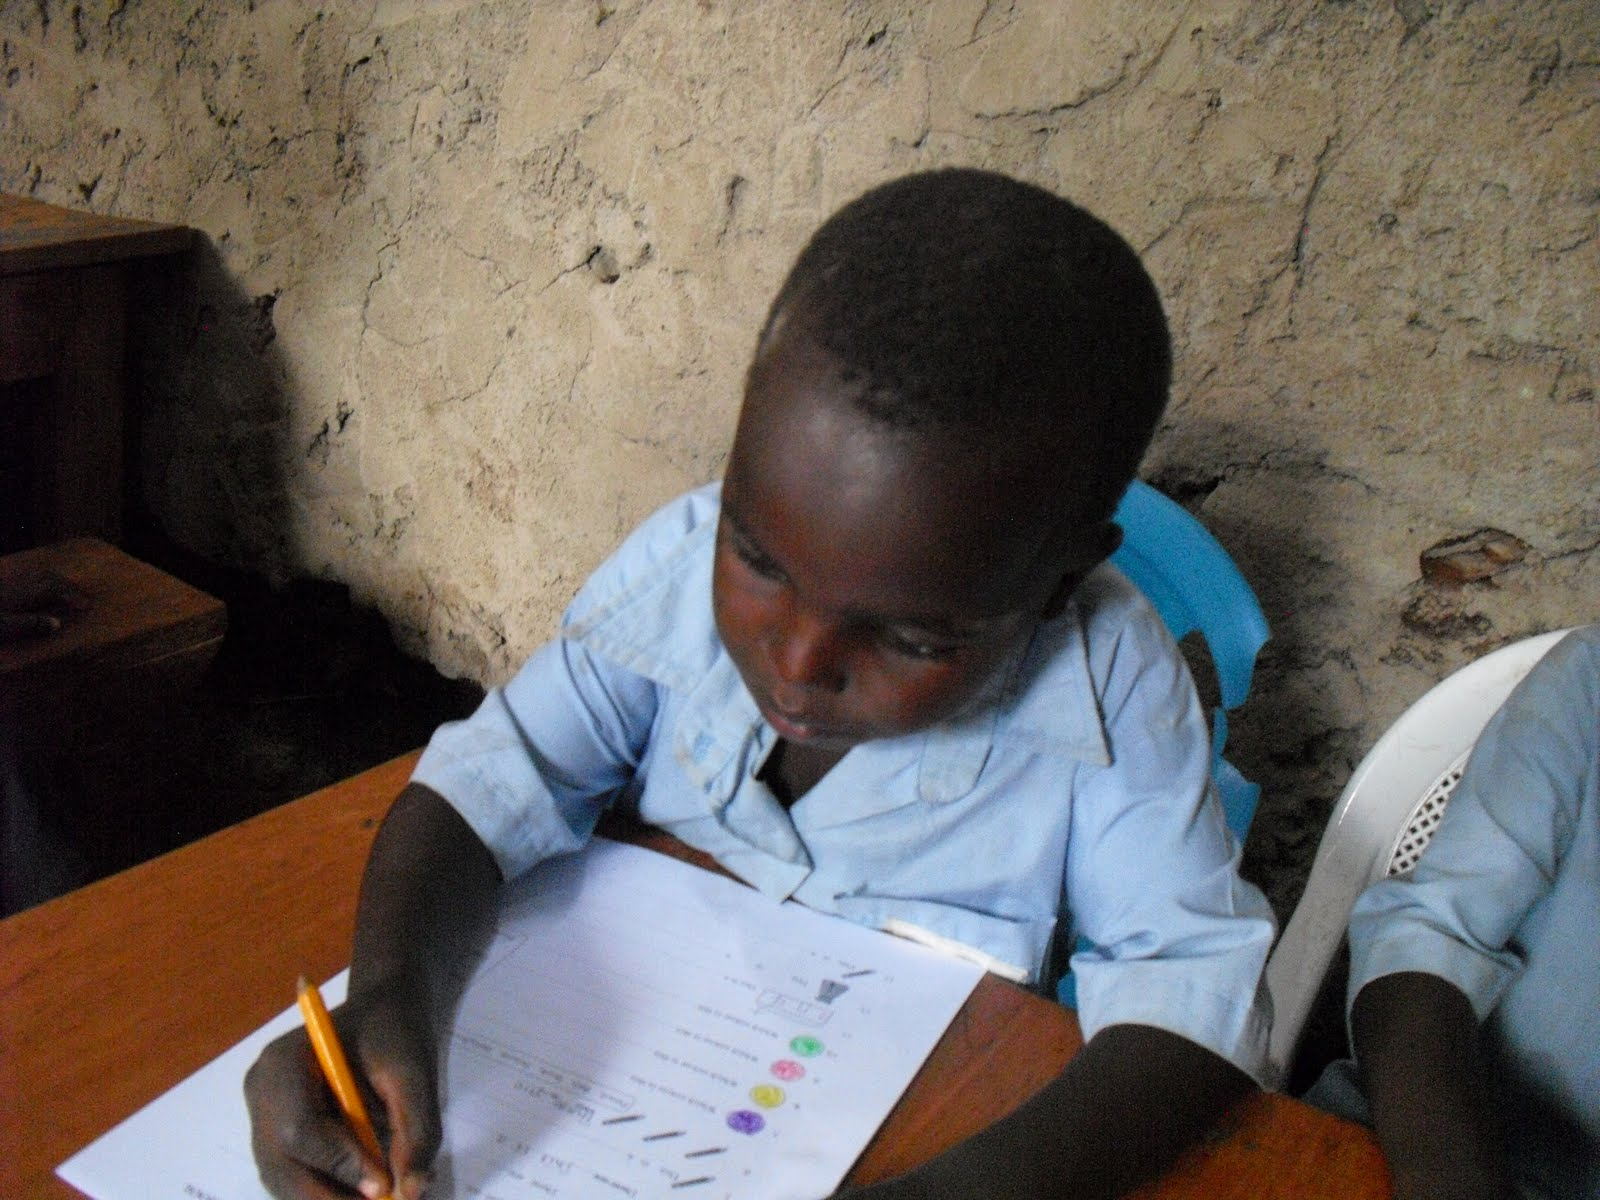 Think Humanity Pens  Pencils Project  Children in Africa in dire need of school supplies